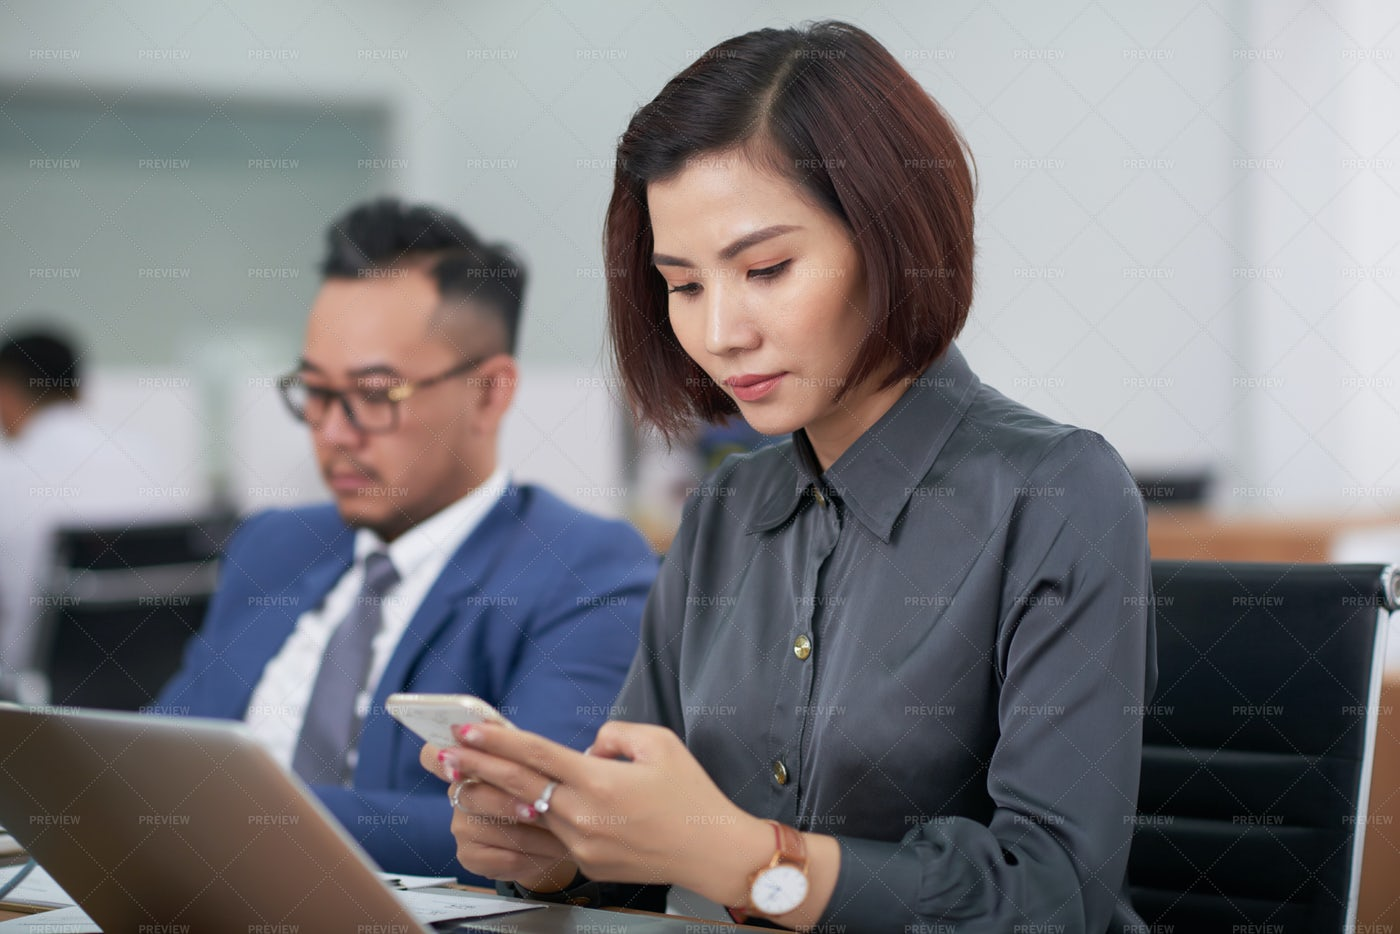 Businesswoman Using Mobile Phone During: Stock Photos